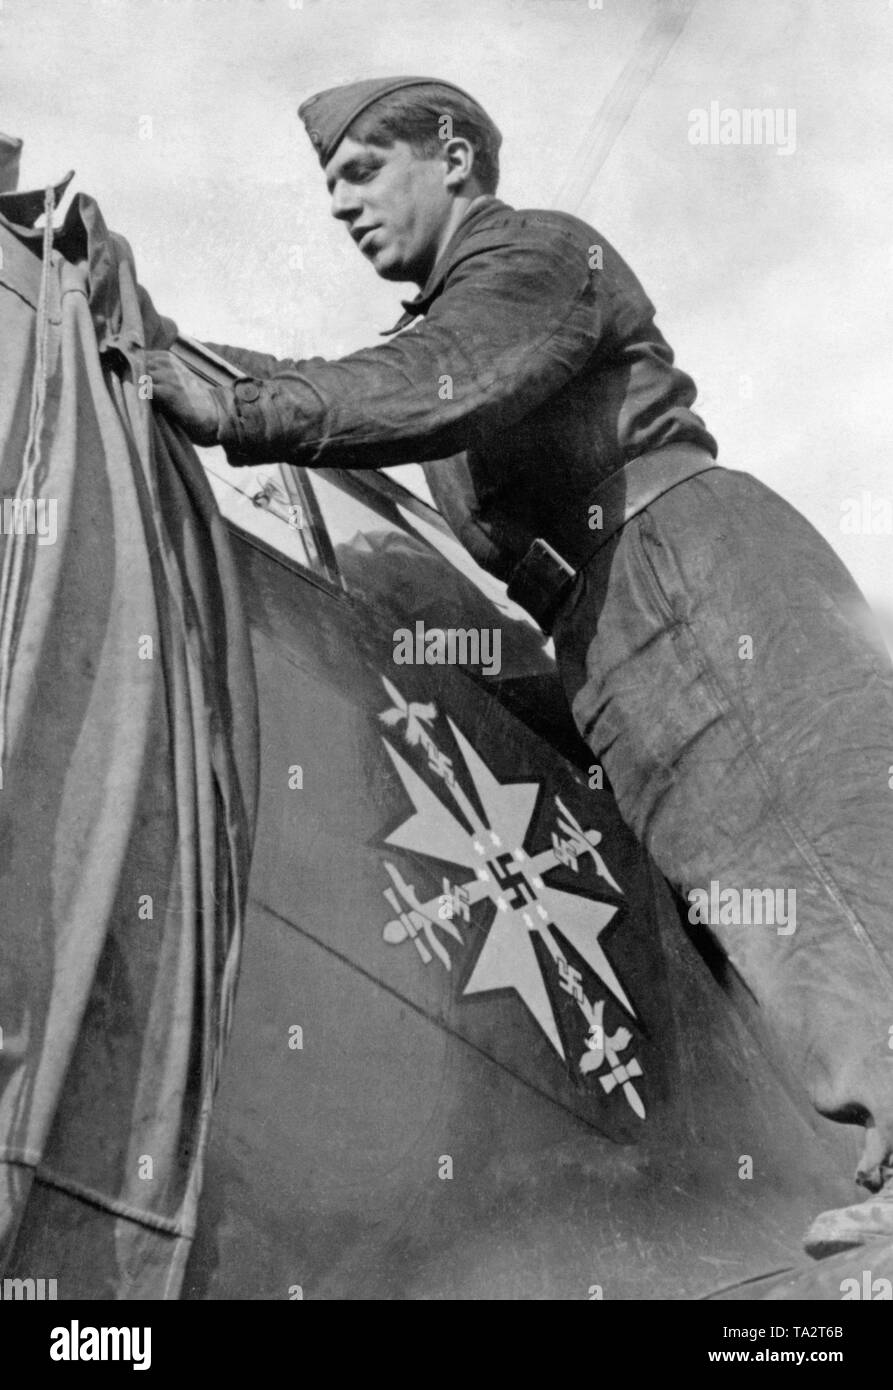 Photo of a German soldier of the ground personnel, who uncovers a Messerschmitt Bf 109 during the air battles of England in October 1940. On display the Spanish Cross, which was awarded by Adolf Hitler to the fighters of the Condor Legion in the Spanish Civil War, 1939. - Stock Image